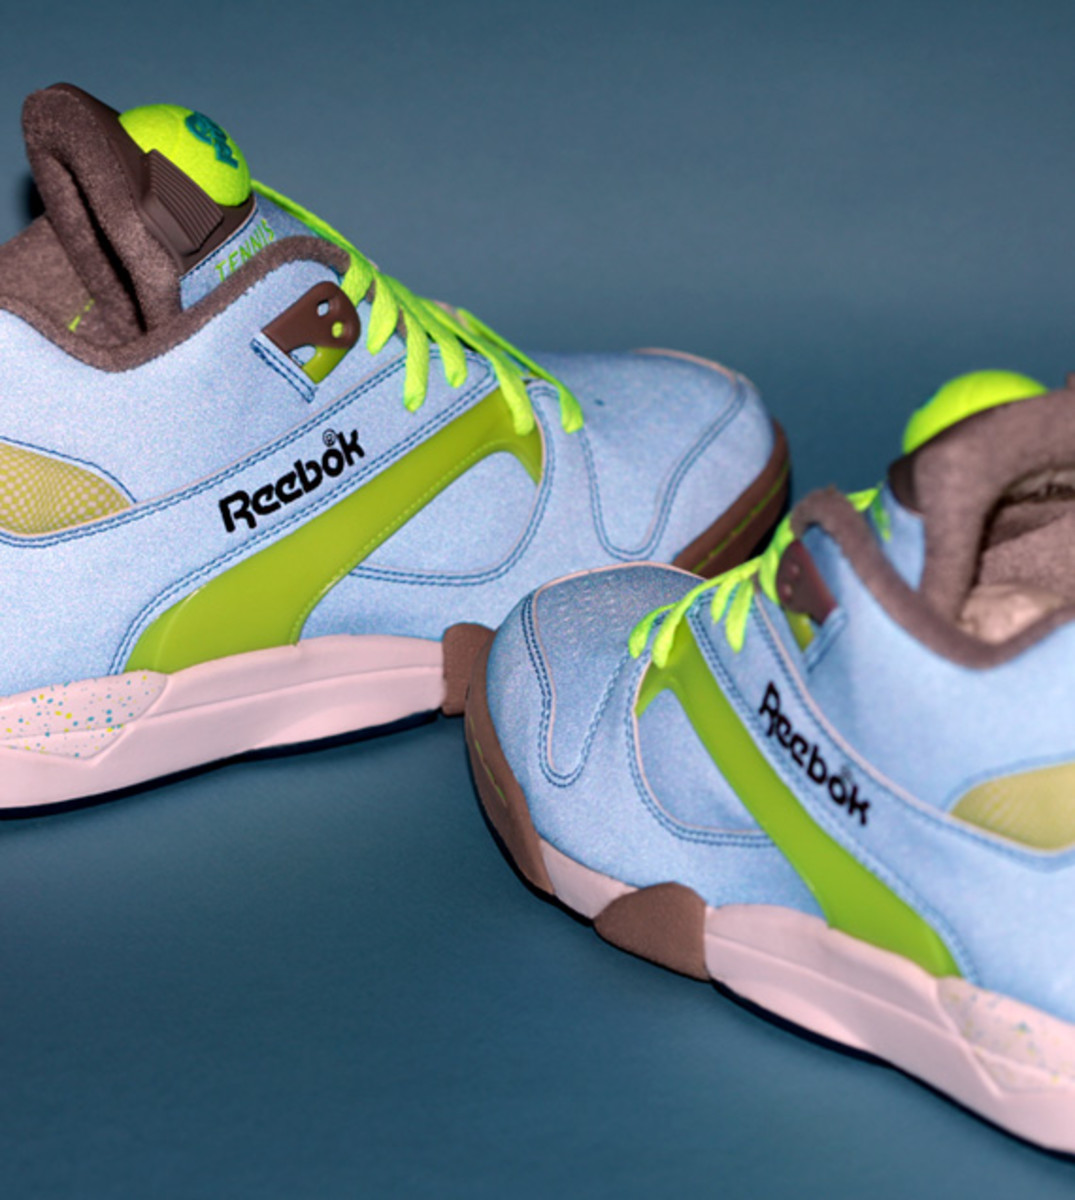 packer-shoes-reebok-court-victory-pump-us-open-16